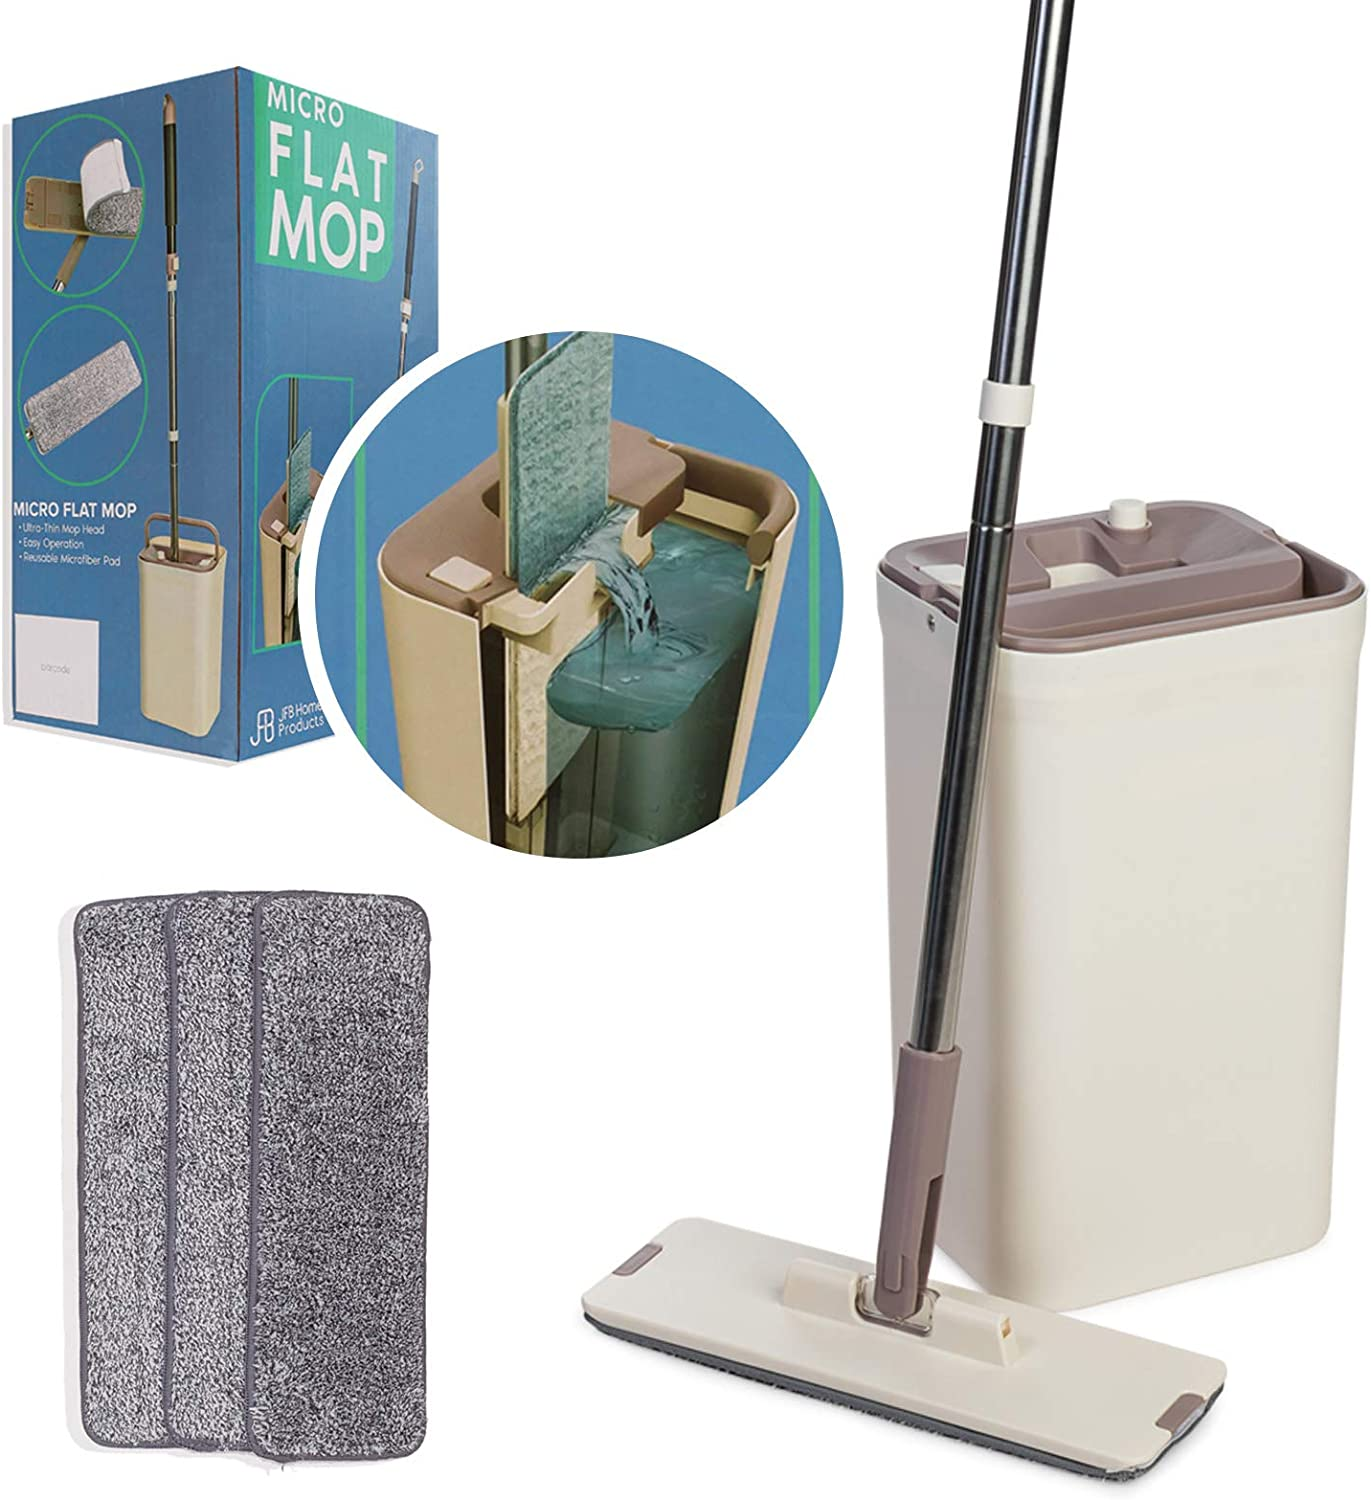 Micro Flat Mop - Mop and Bucket System - Hands-Free Wringing Floor Cleaning Mop - 3 Washable & Reusable Microfiber Mop Pads - Wet or Dry Usage on Wood, Marble, Tile, Laminate, Ceramic and Vinyl Floors